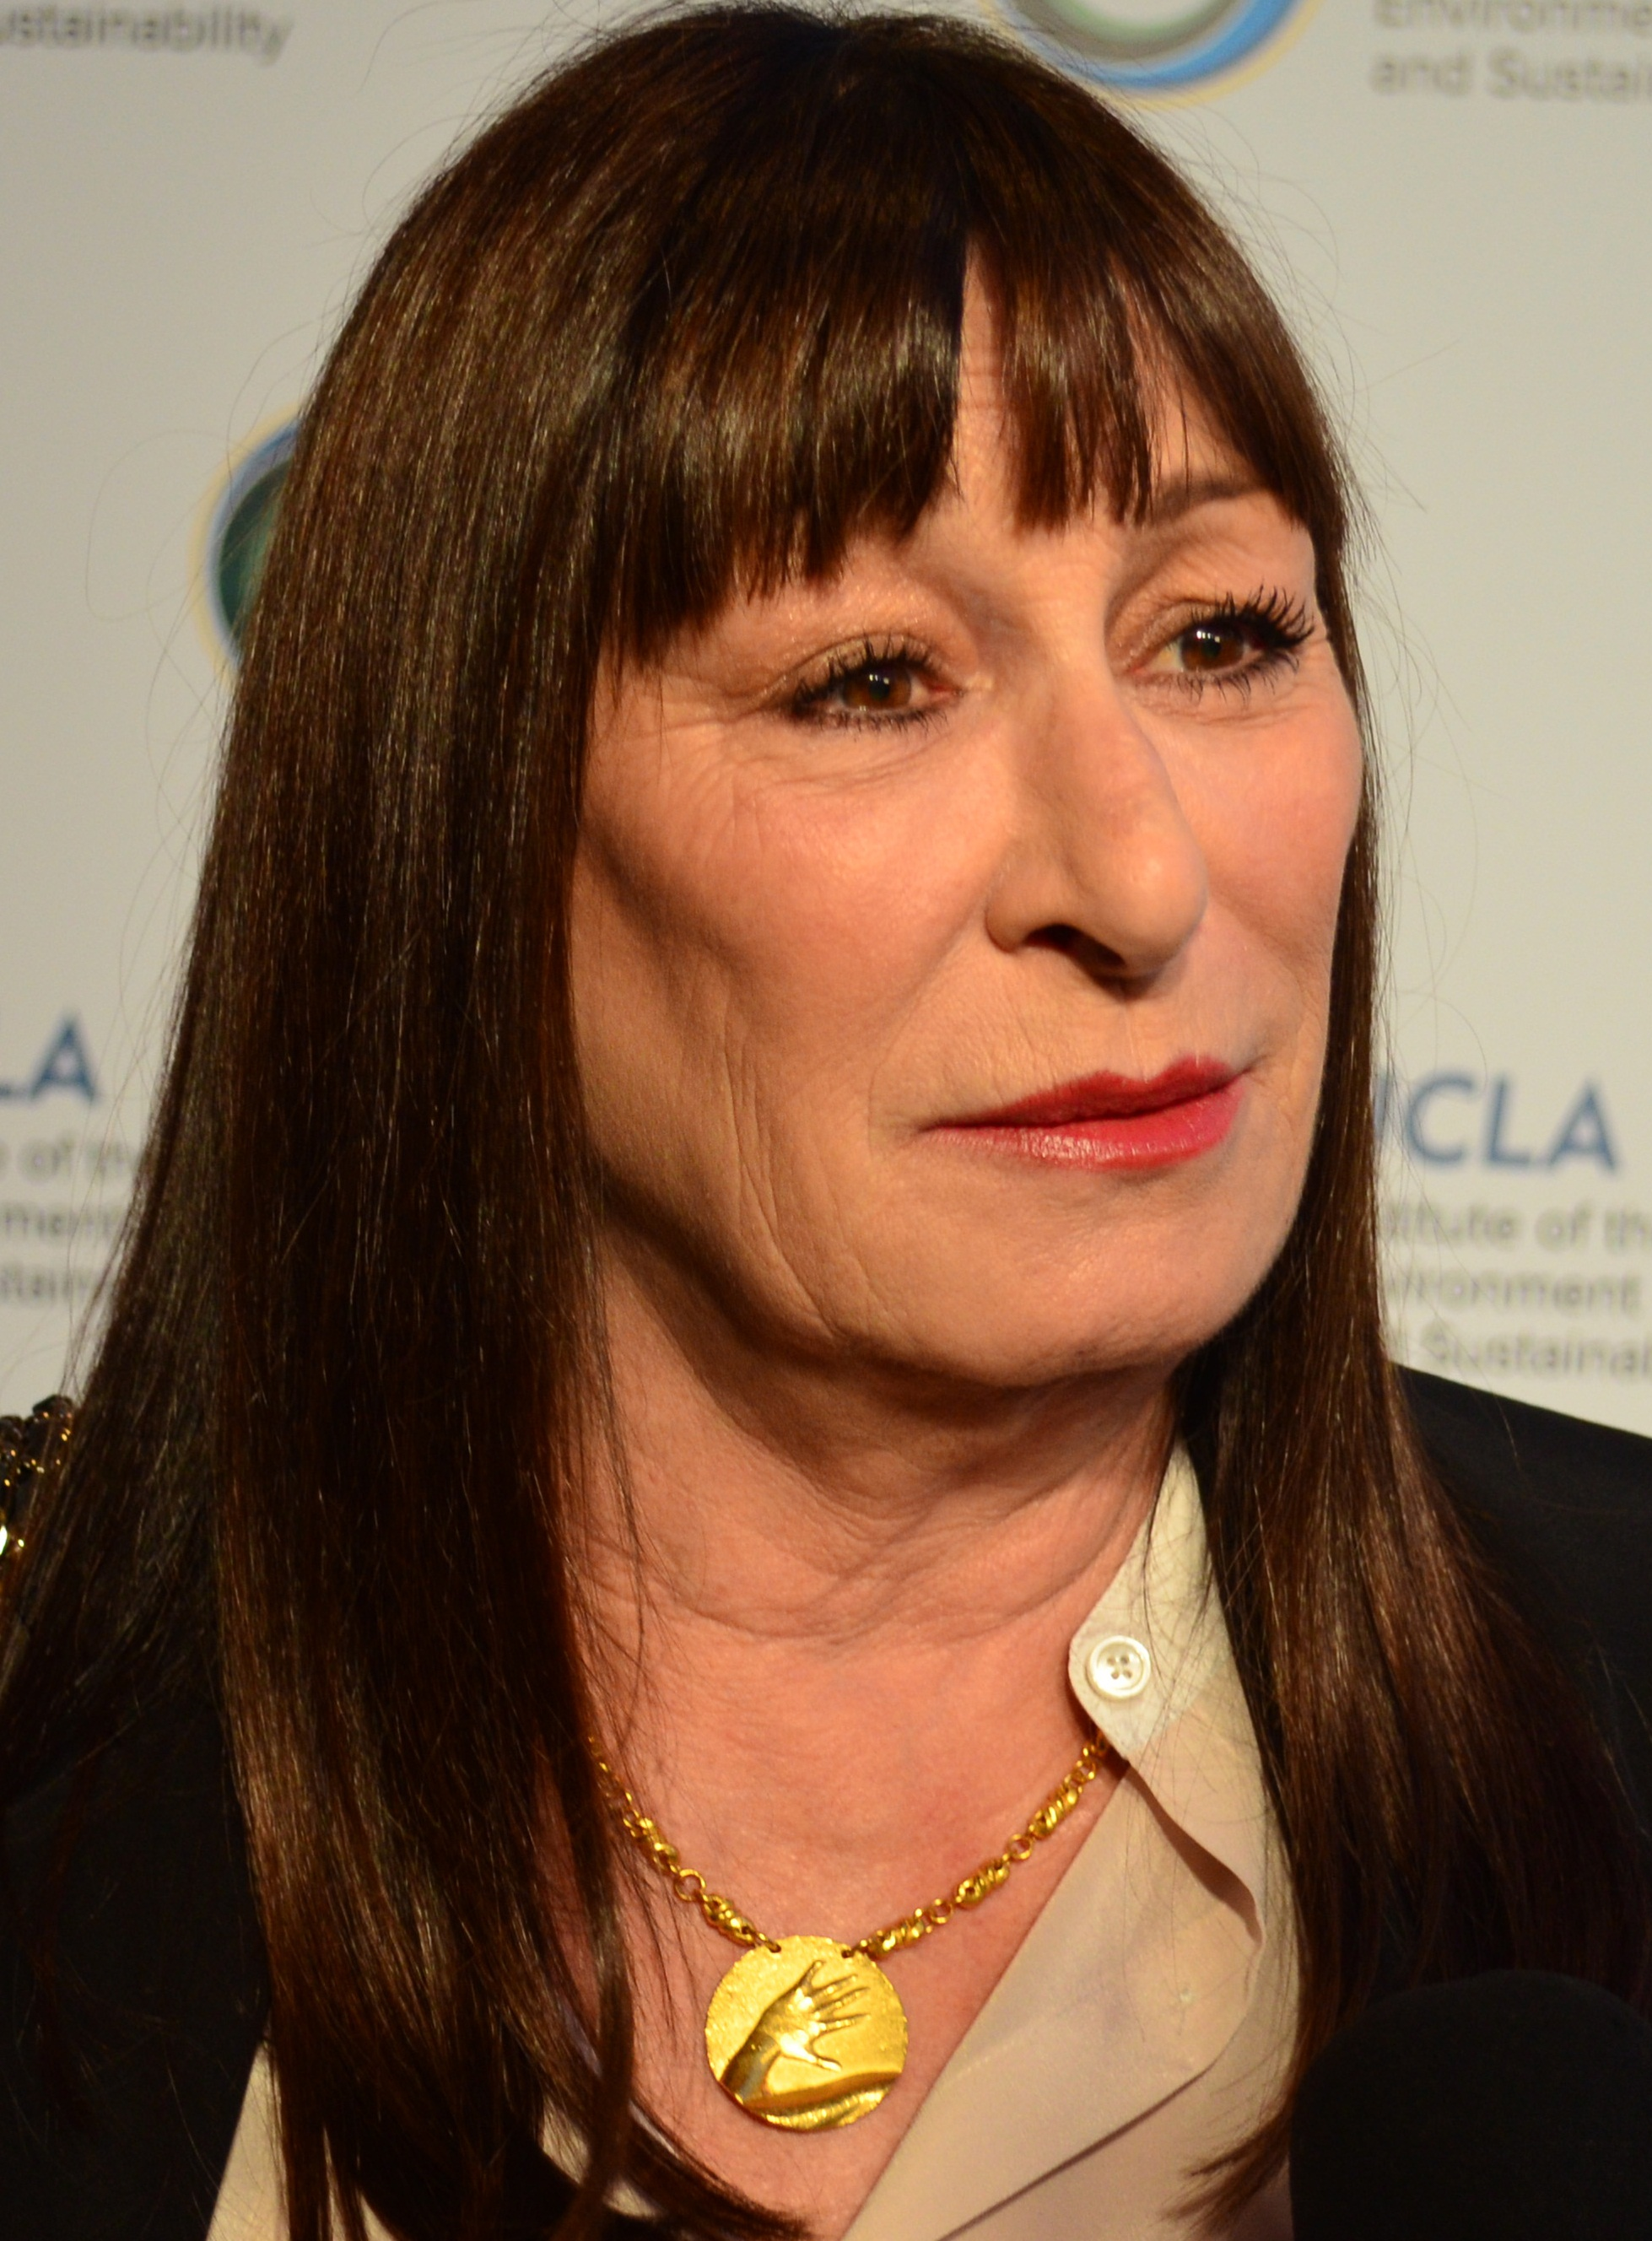 Anjelica_Huston_March_21%2C_2014_%28cropped%29